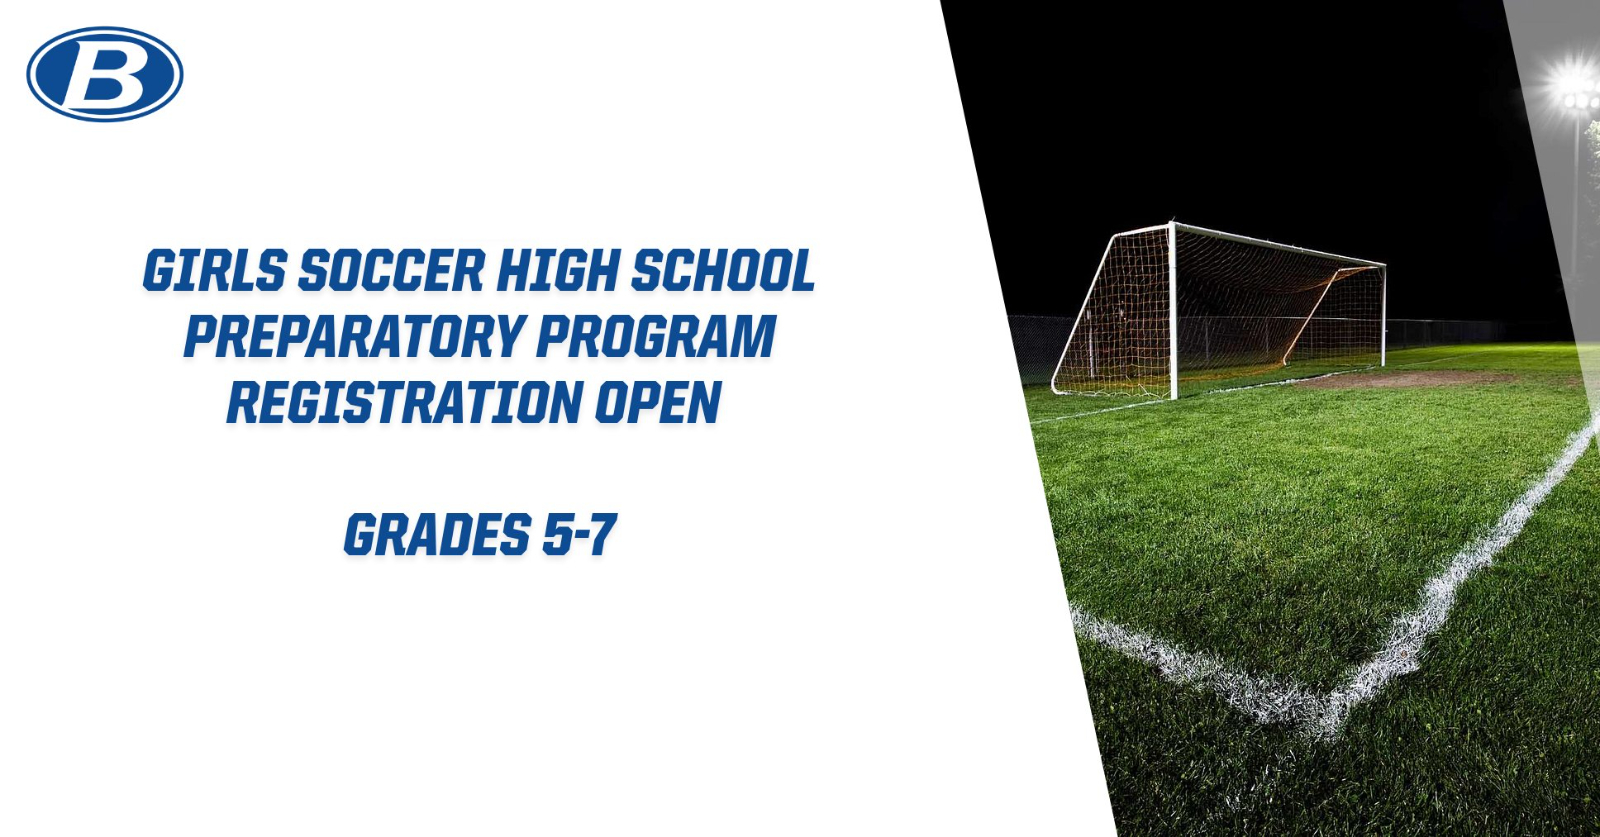 GIRLS SOCCER HIGH SCHOOL PREPARATORY PROGRAM REGISTRATION OPEN